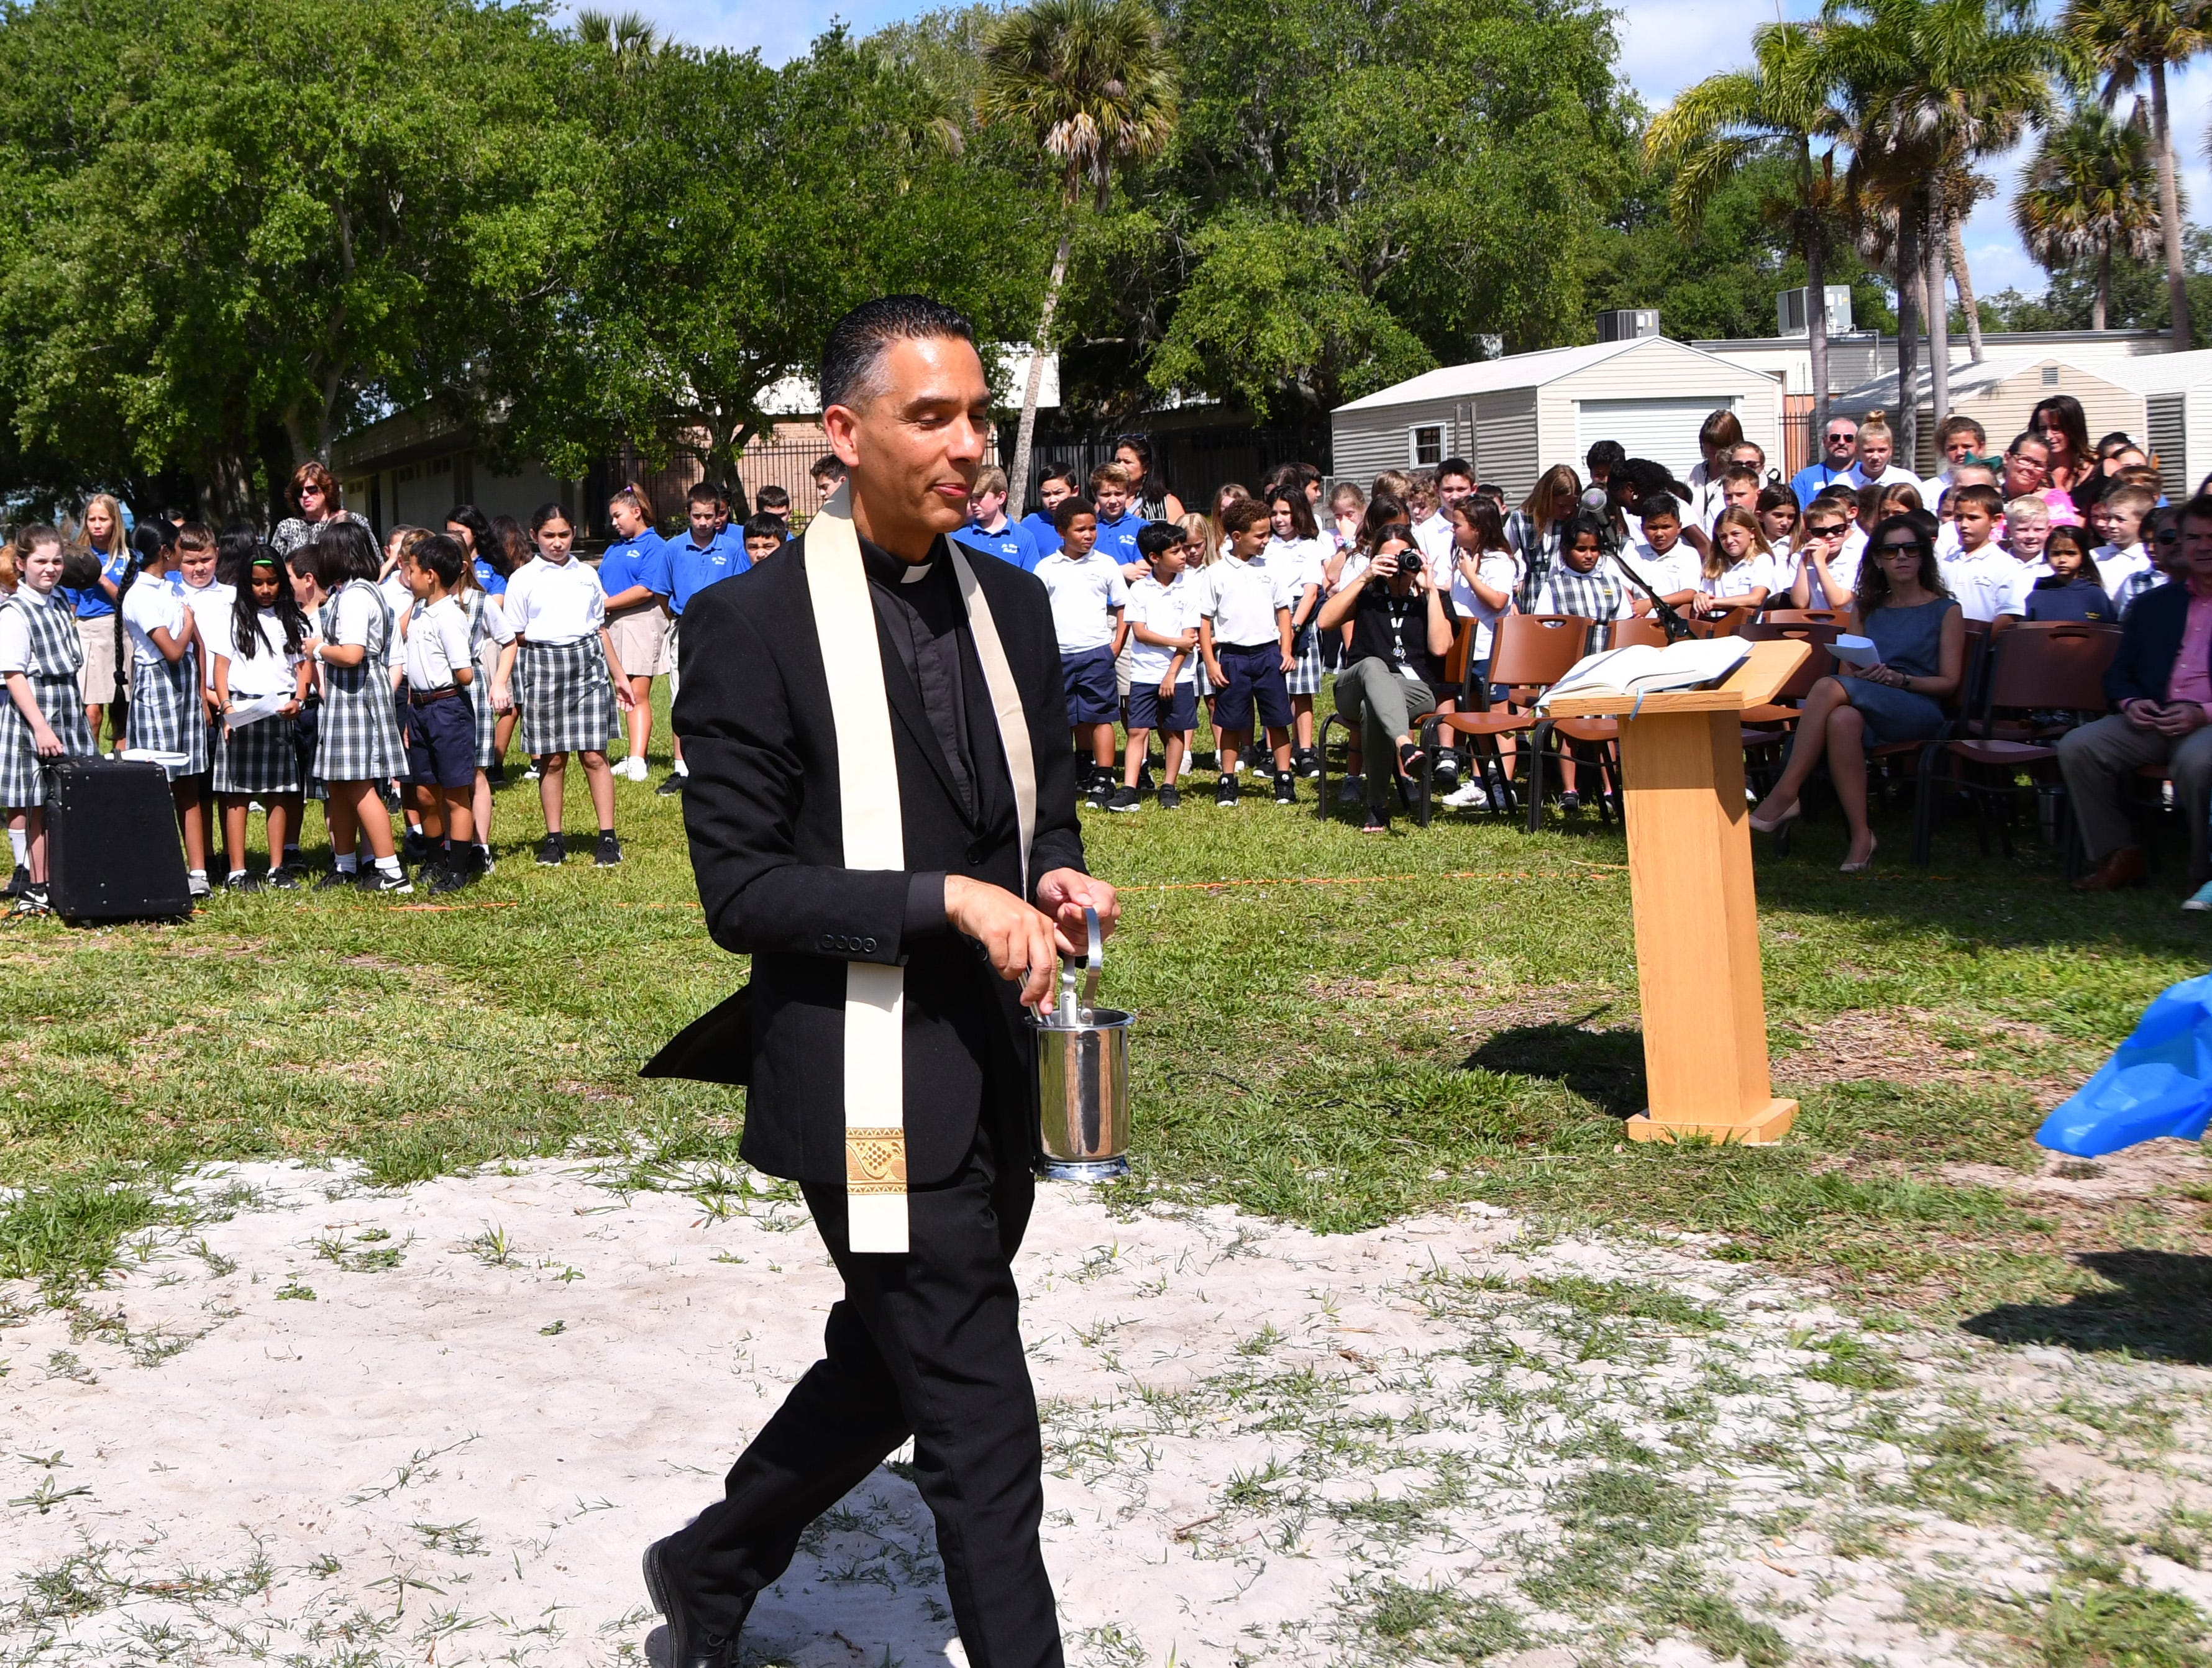 Very Rev. Ivan Olmo spoke to the group  before blessing the structures. St. Mary Catholic School in Rockledge hosted a dedication ceremony for its newly constructed shade structures Wednesday morning made possible by a grant from the American Academy of Dermatology's Adopt-A-Shade program. Board-certified dermatologist, Francille MacFarland, MD, FAAD, provided a generous donation to the AAD, which completed the funding necessary to build the structure over the school's primary playground and picnic area. The shade will help protect more than 250 children and teachers daily from the sun's harmful ultraviolet rays. Other parishioners, families, doctors and school fund raisers helped cover the cost.